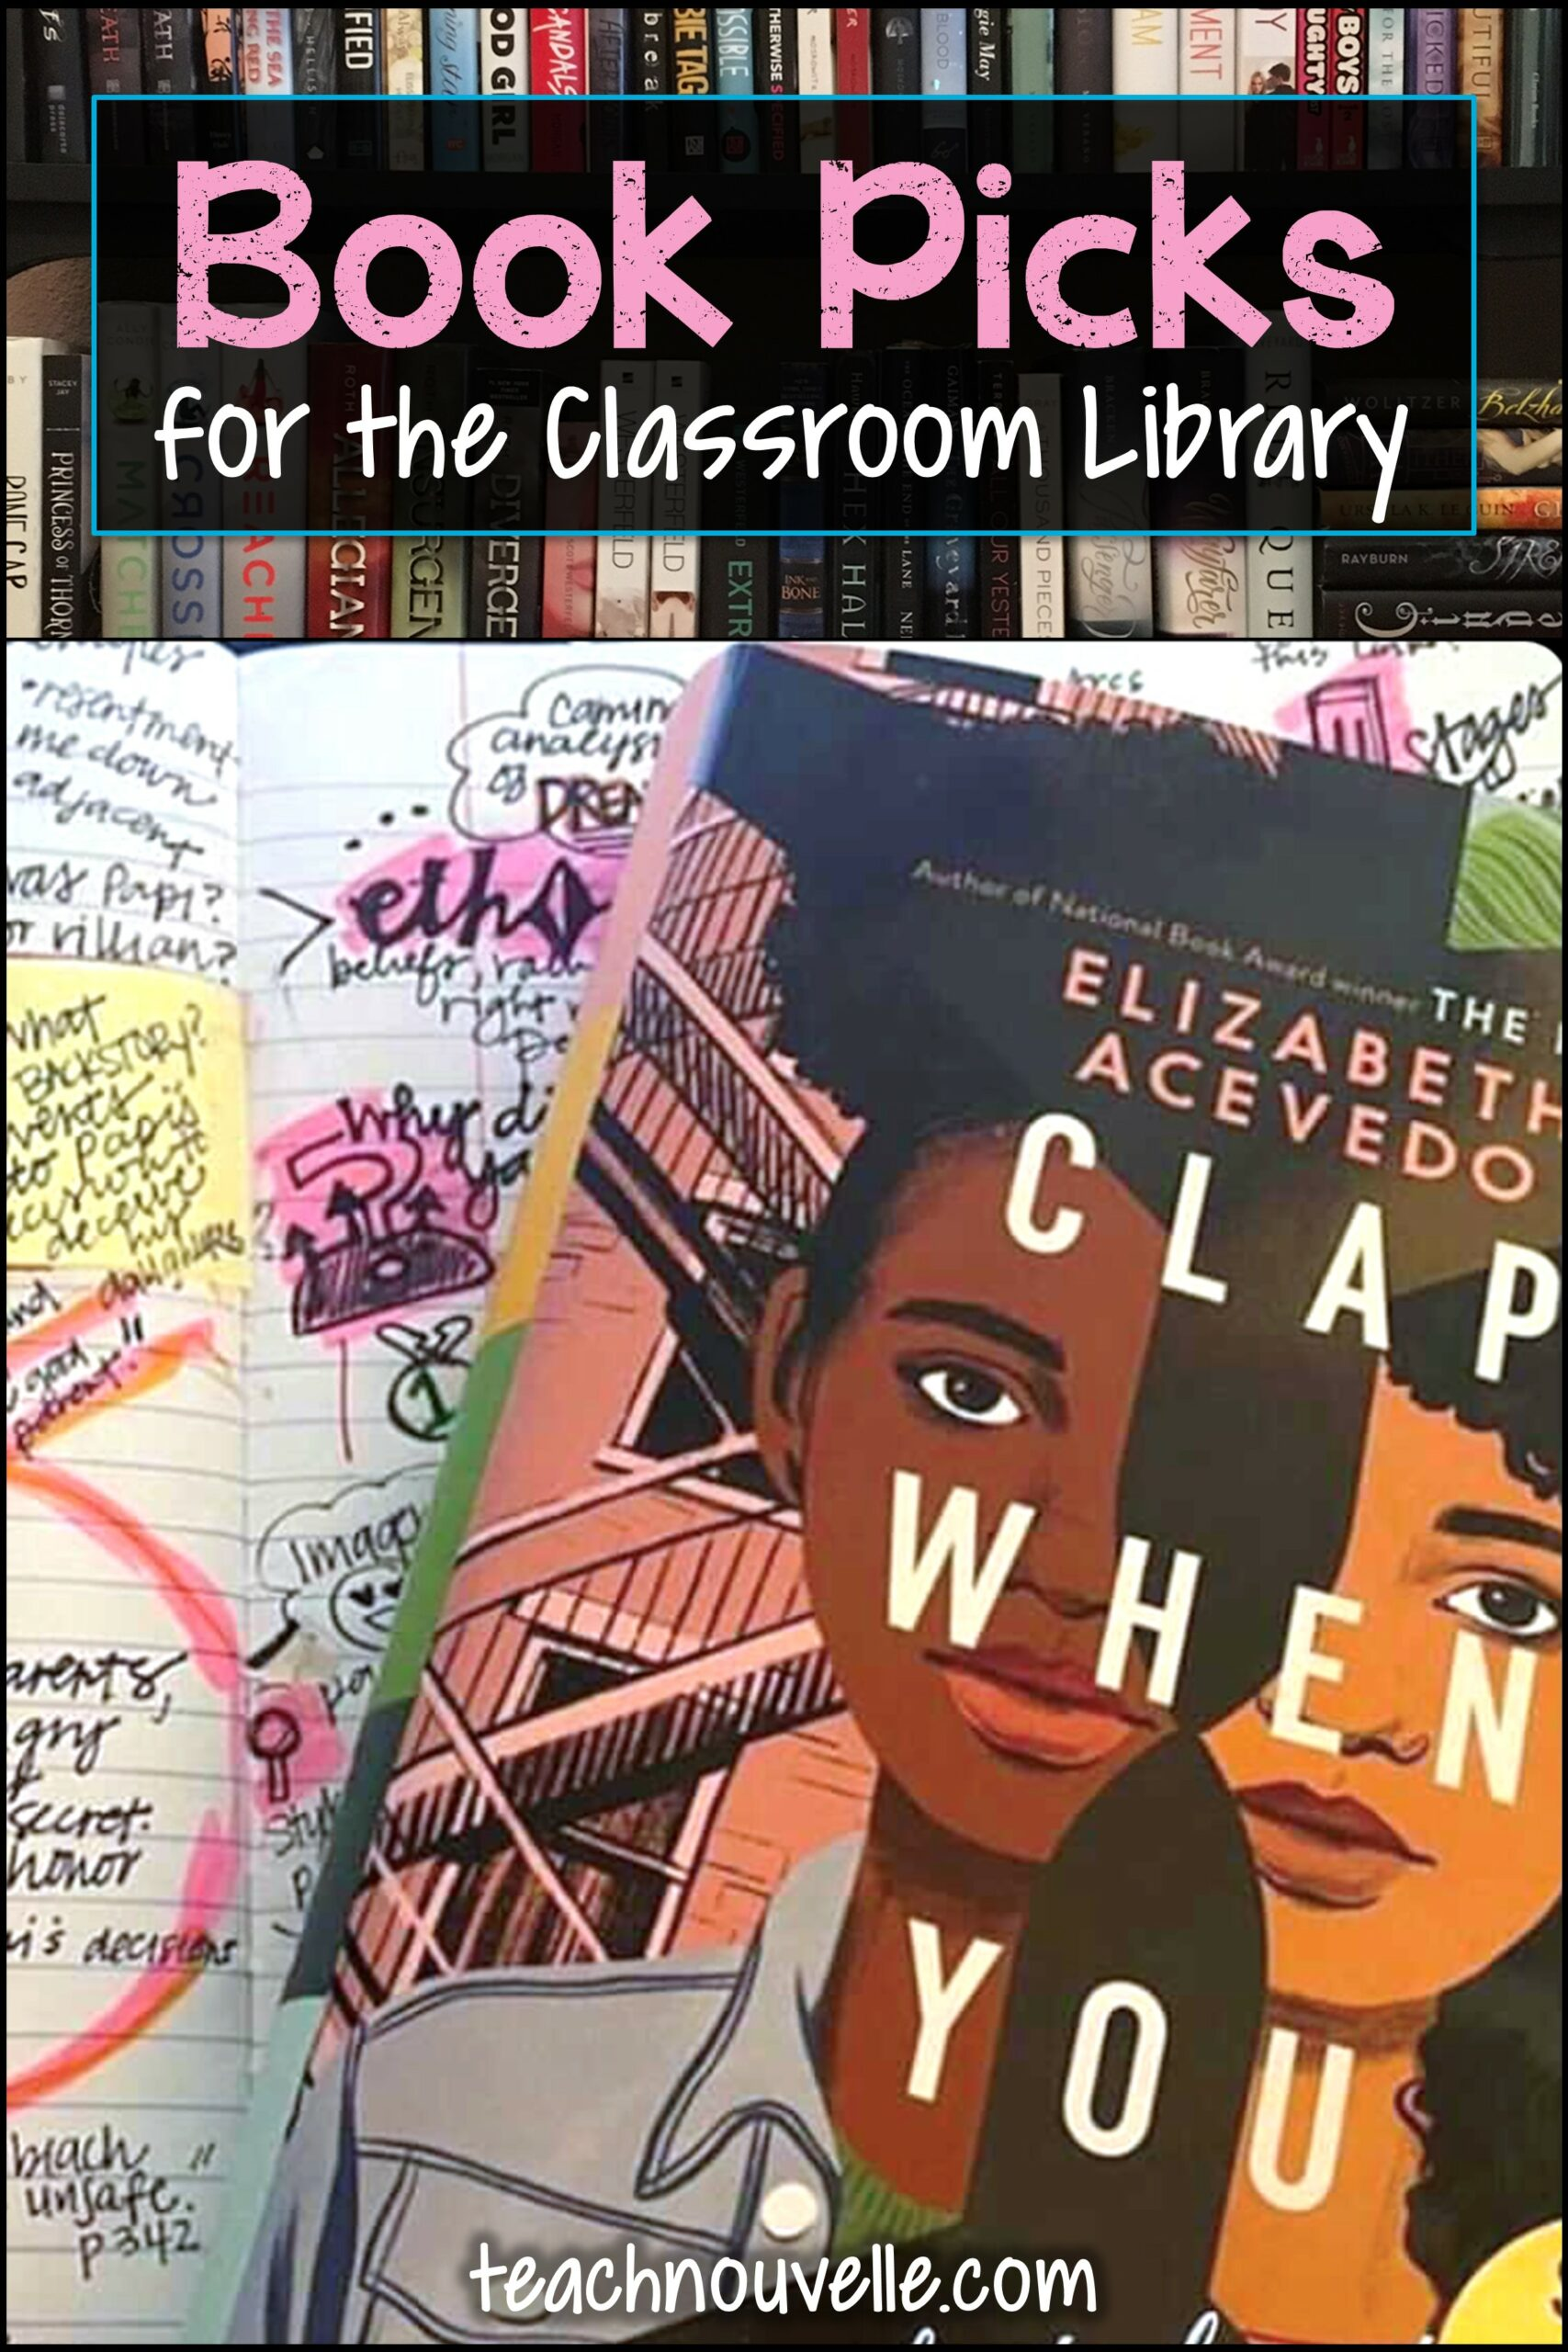 Clap When You Land by Elizabeth Acevedo is a great choice for your high school classroom library! Check out this blog post for teaching ideas and text pairing suggestions.